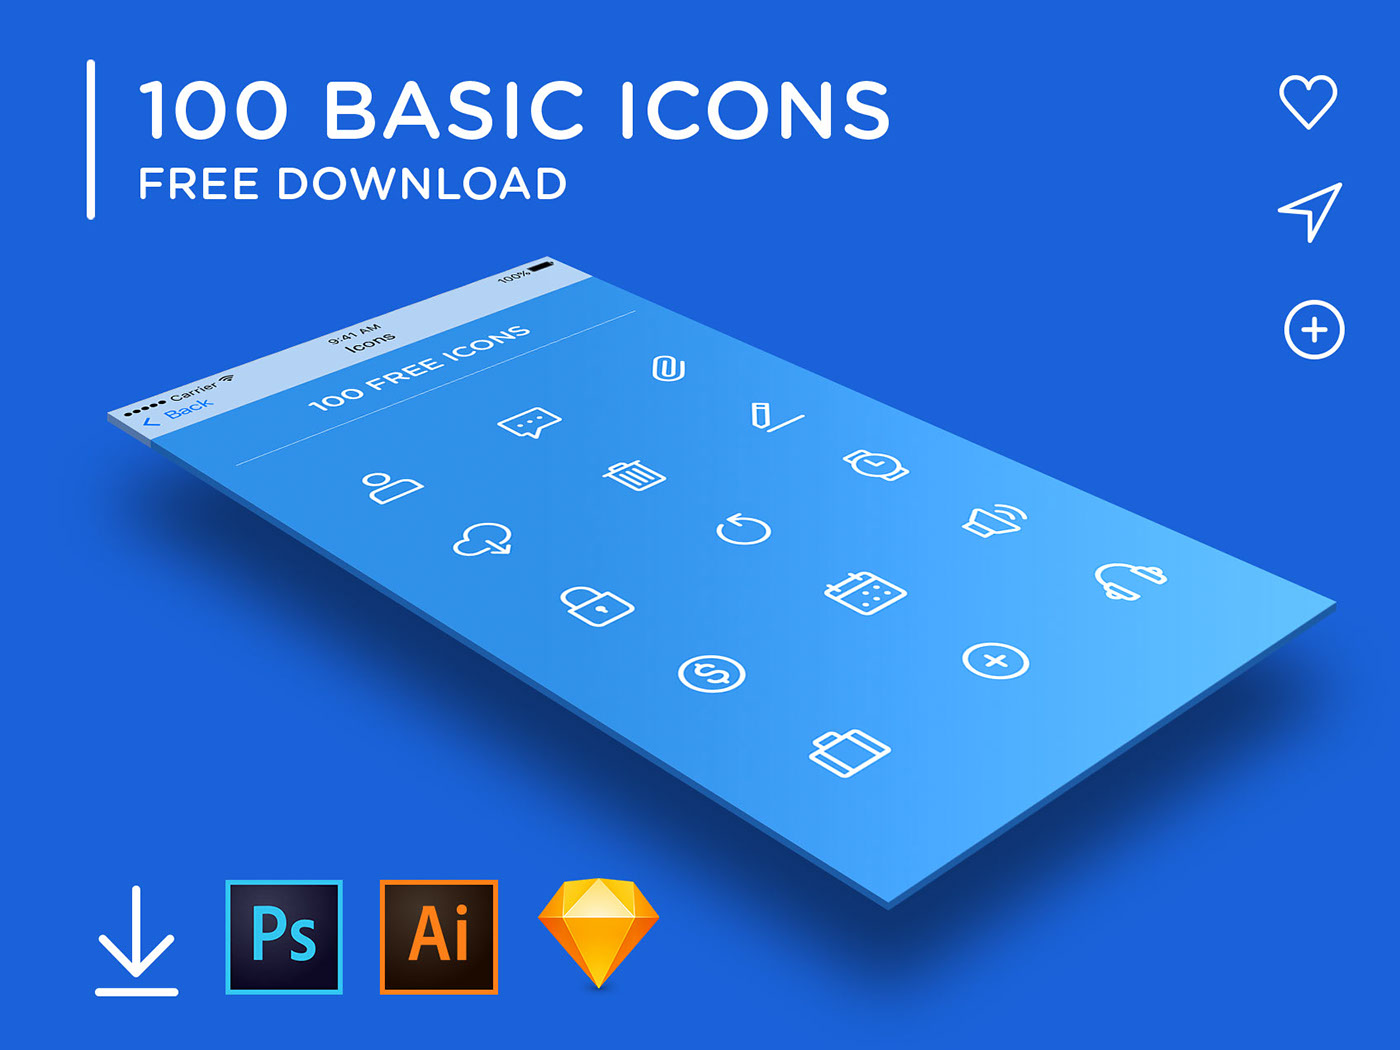 Free Download: 100 Basic Icons